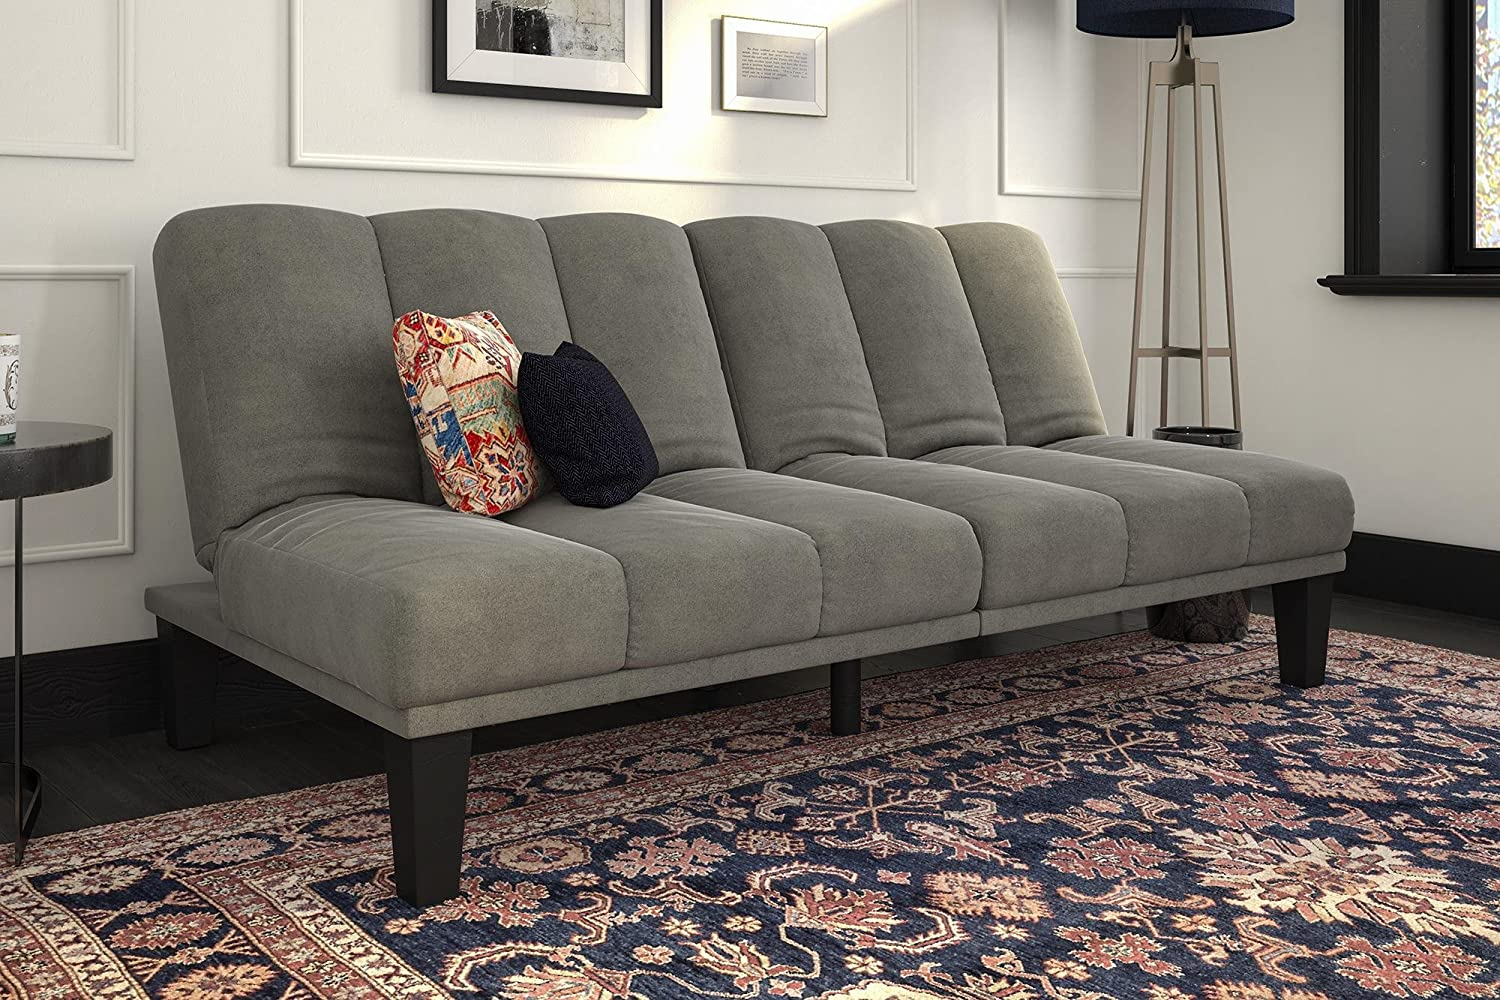 Hamilton Estate Premium Futon Sofa Sleeper – DHP